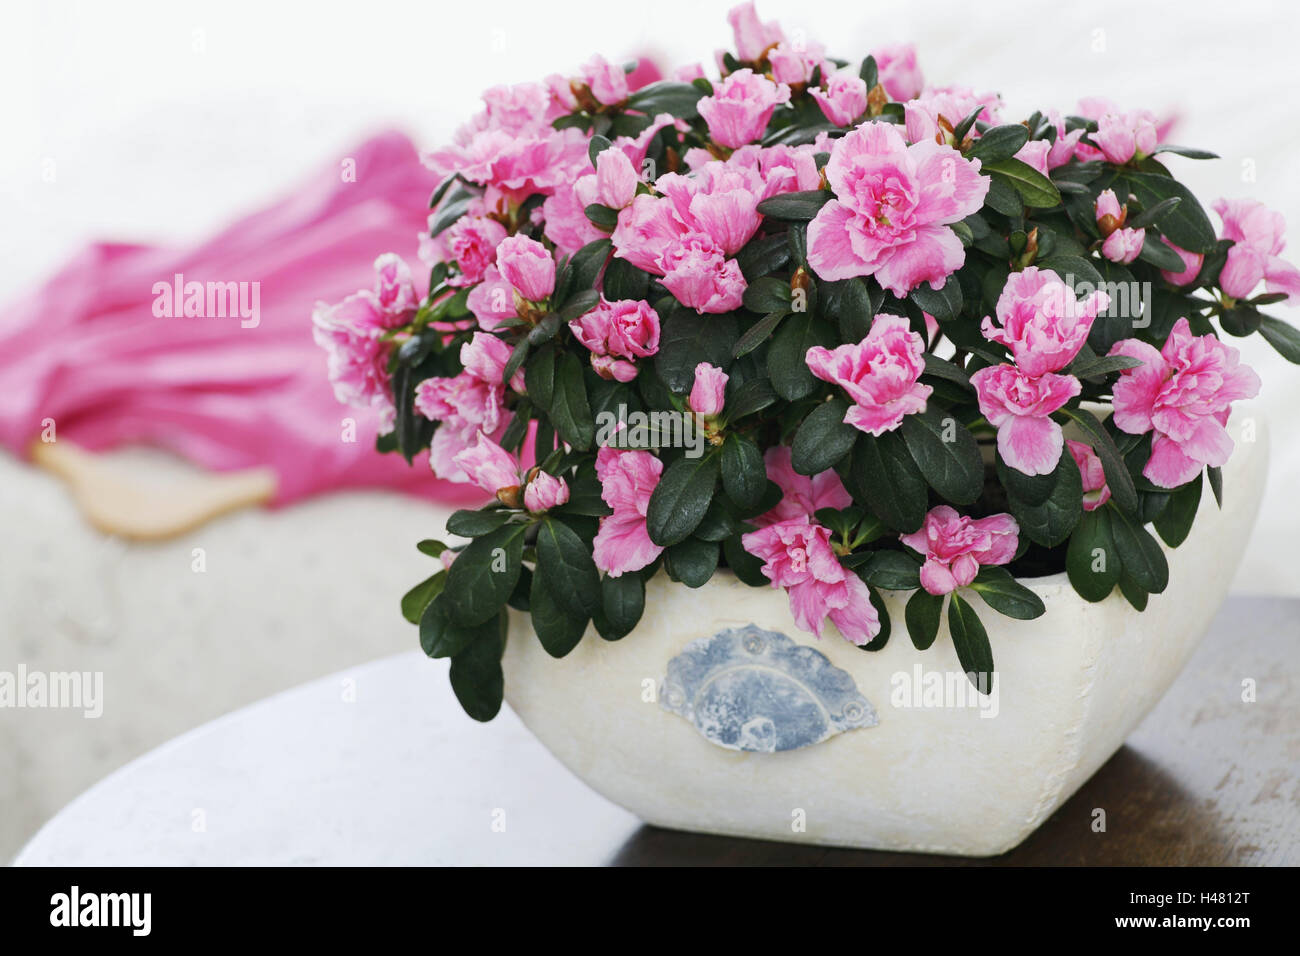 Azalees Blossom Plante D Interieur Table Rhododendron Rose